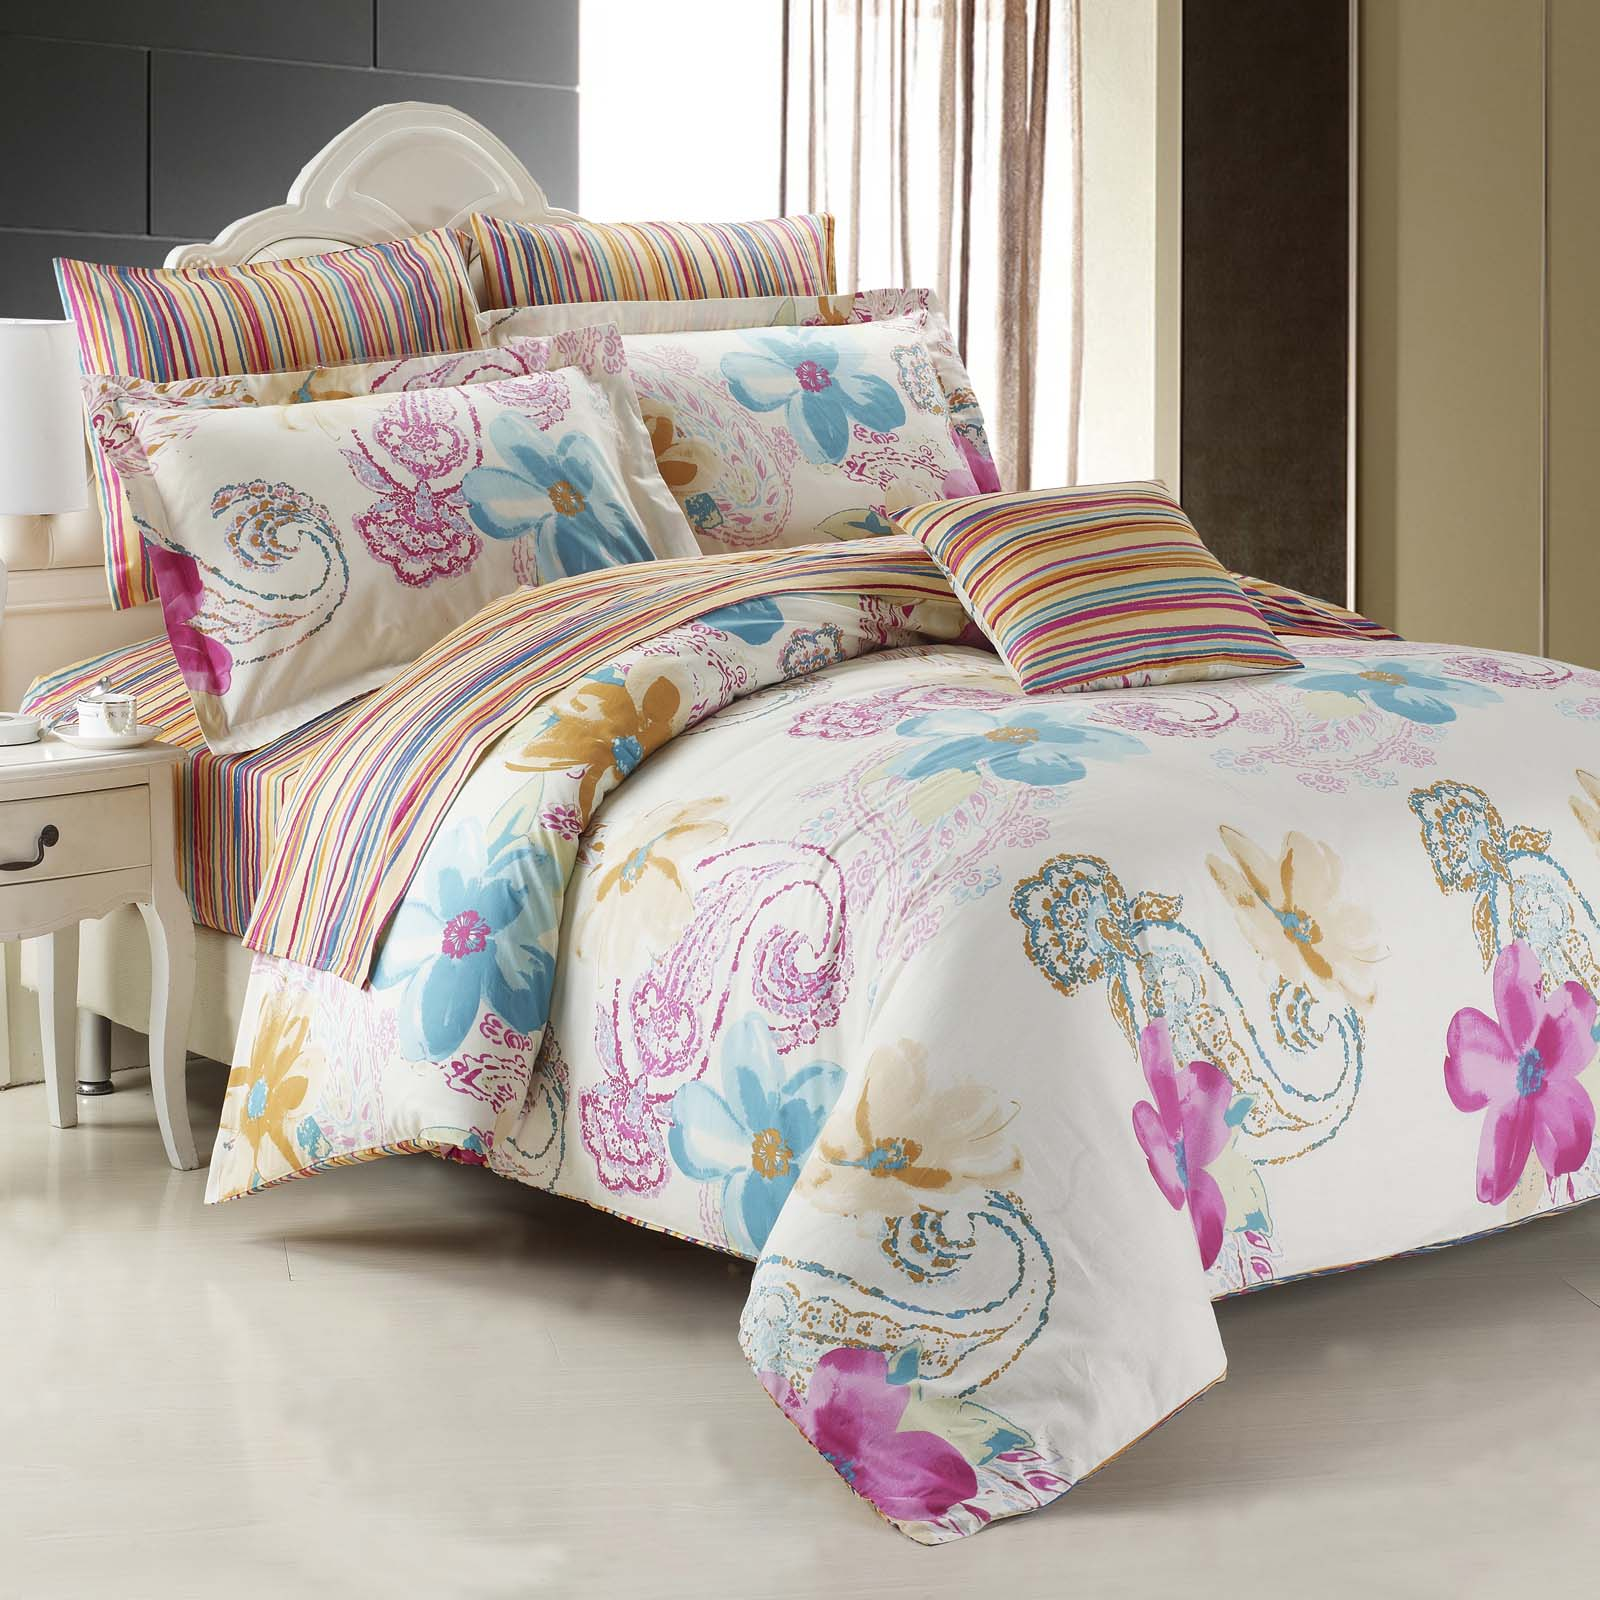 Mirage Duvet Cover Set